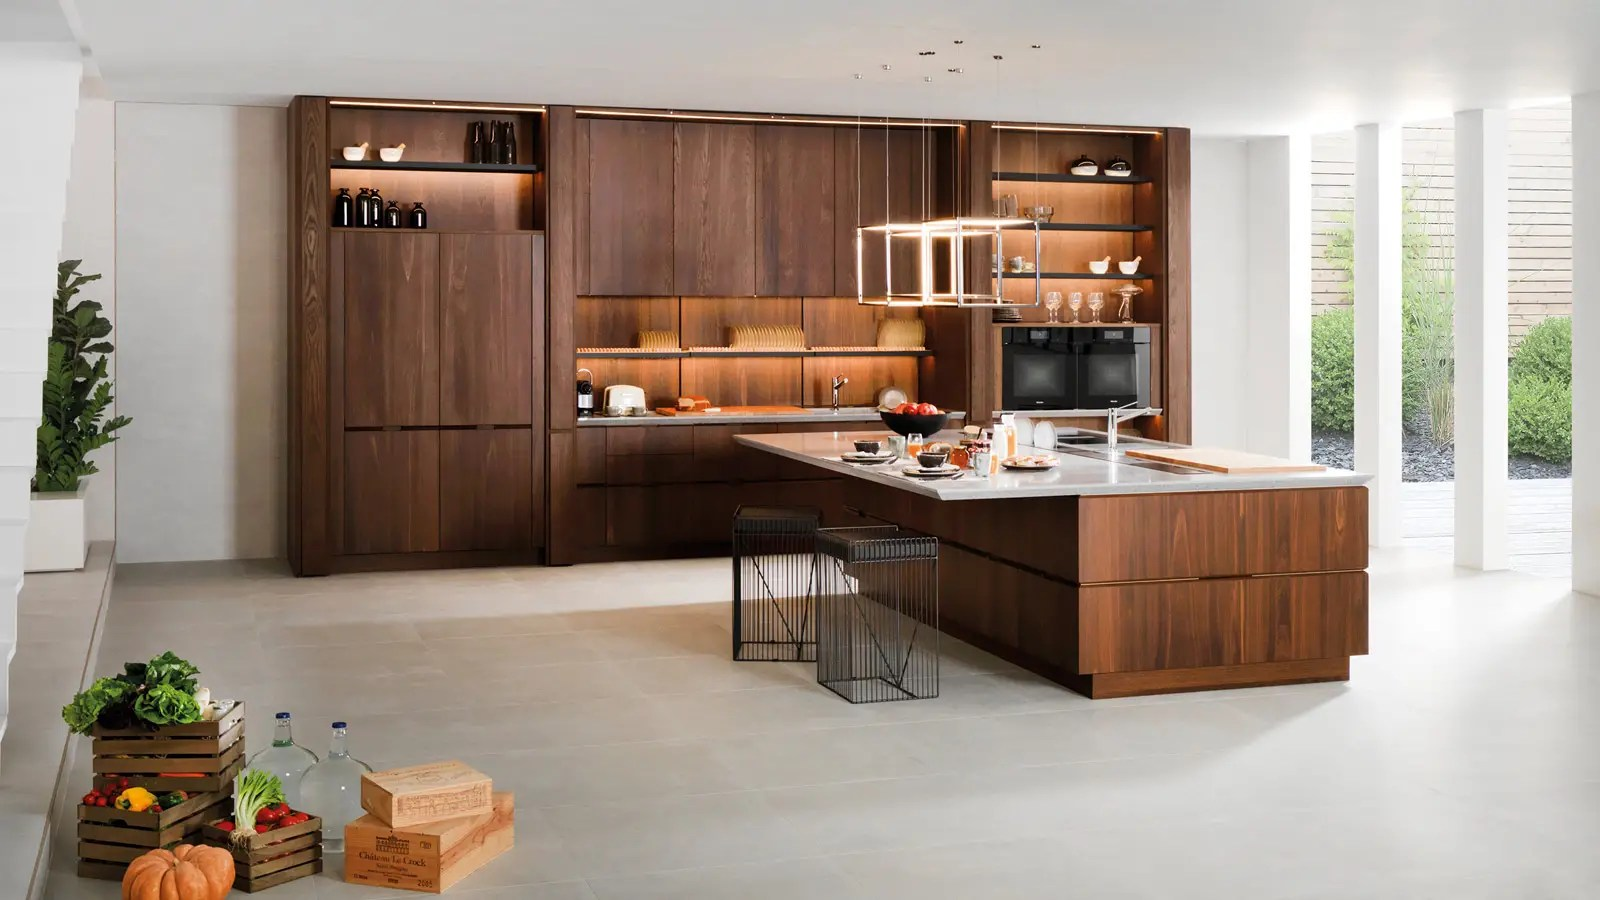 Porcelanosa Kitchen Cabinets The Latest Innovations At The 26th Porcelanosa Grupo International